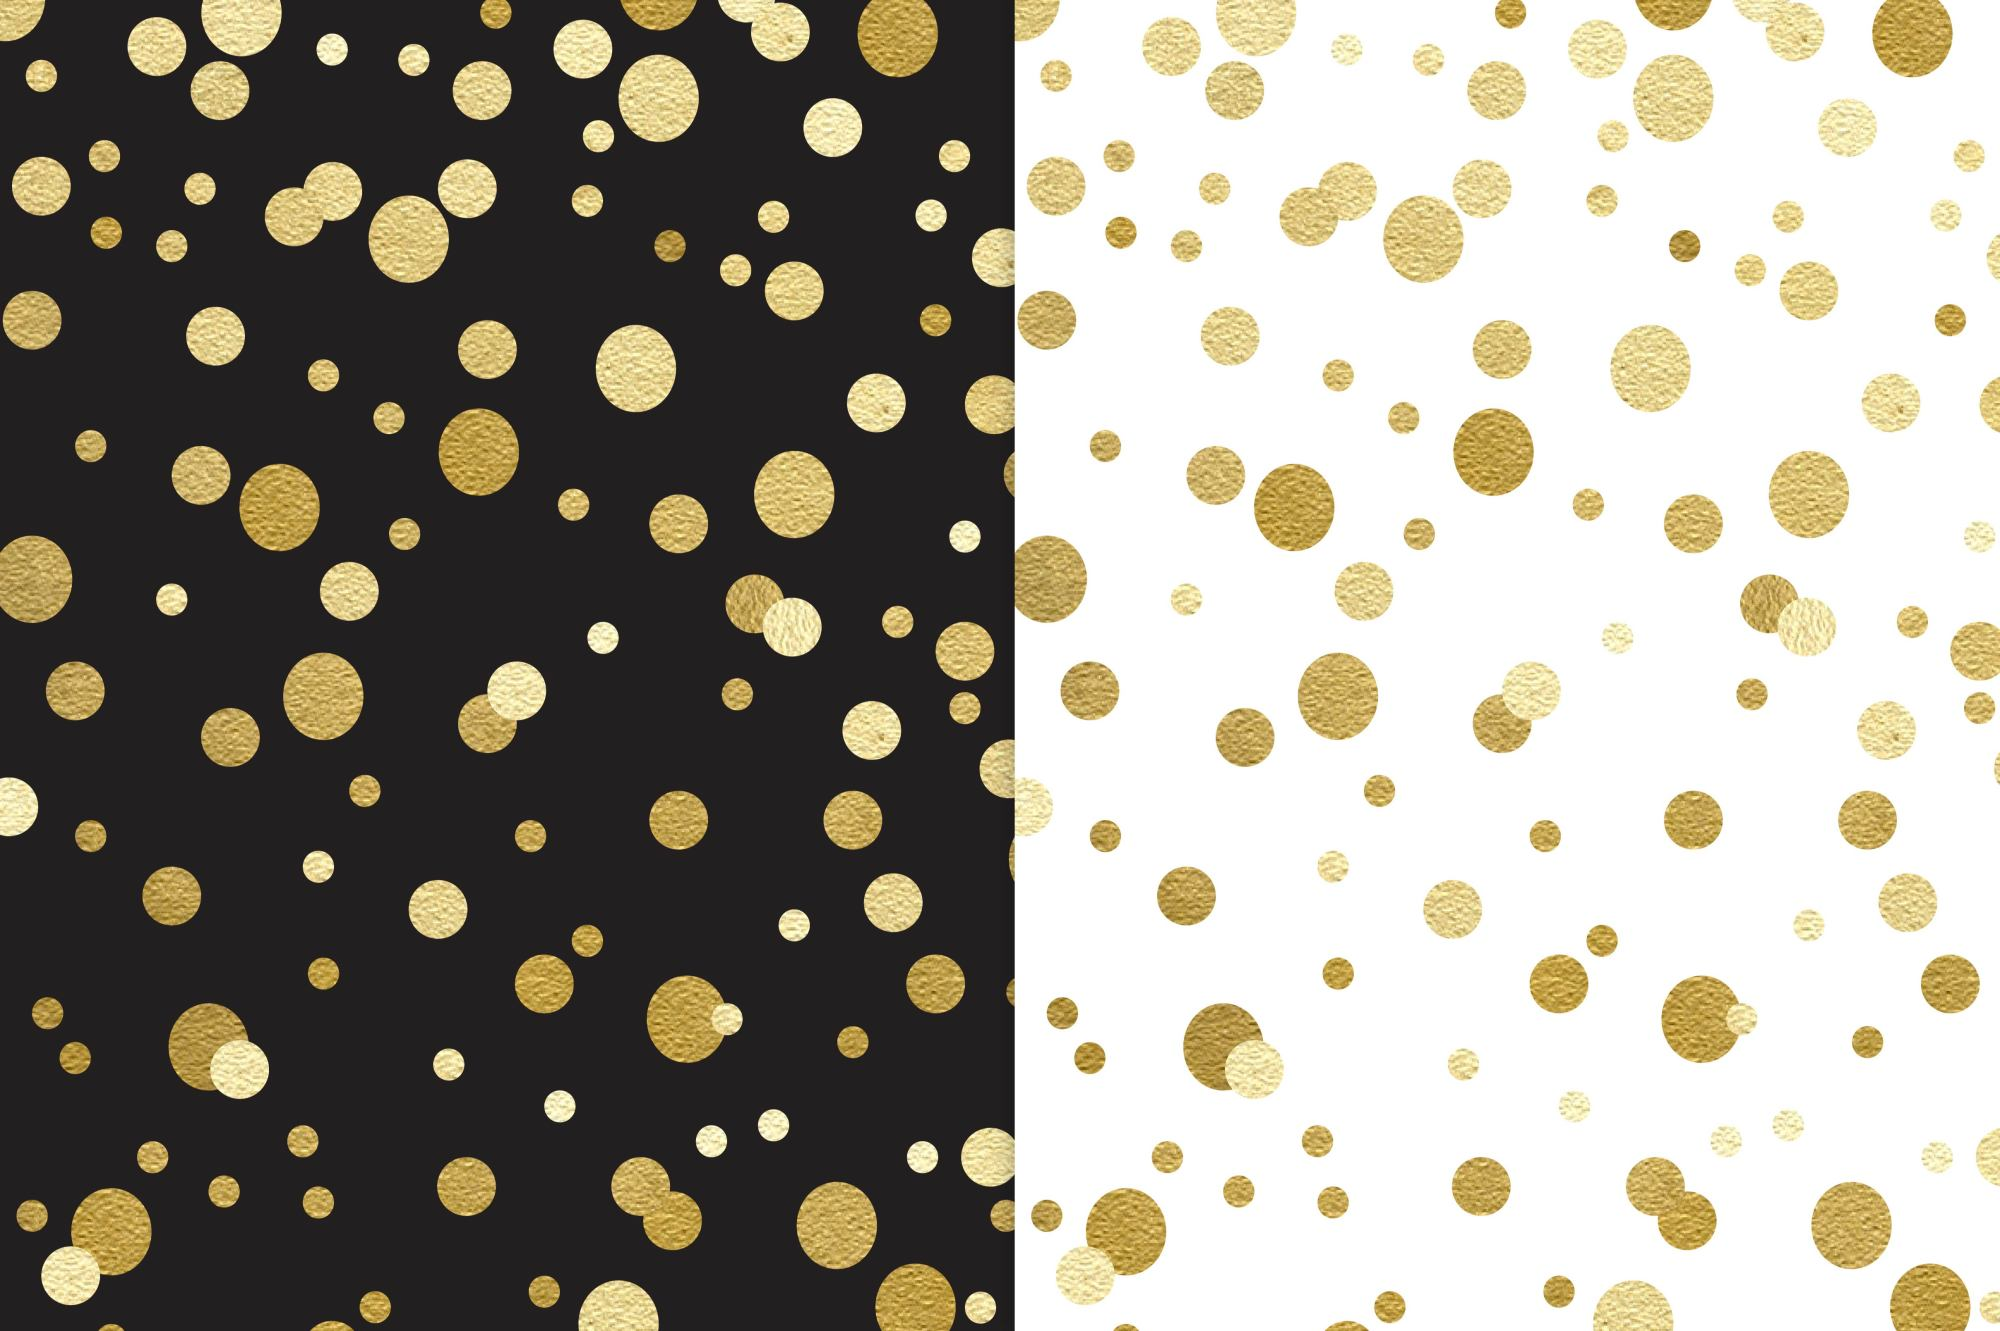 Black and Gold Digital Paper Patterns example image 2